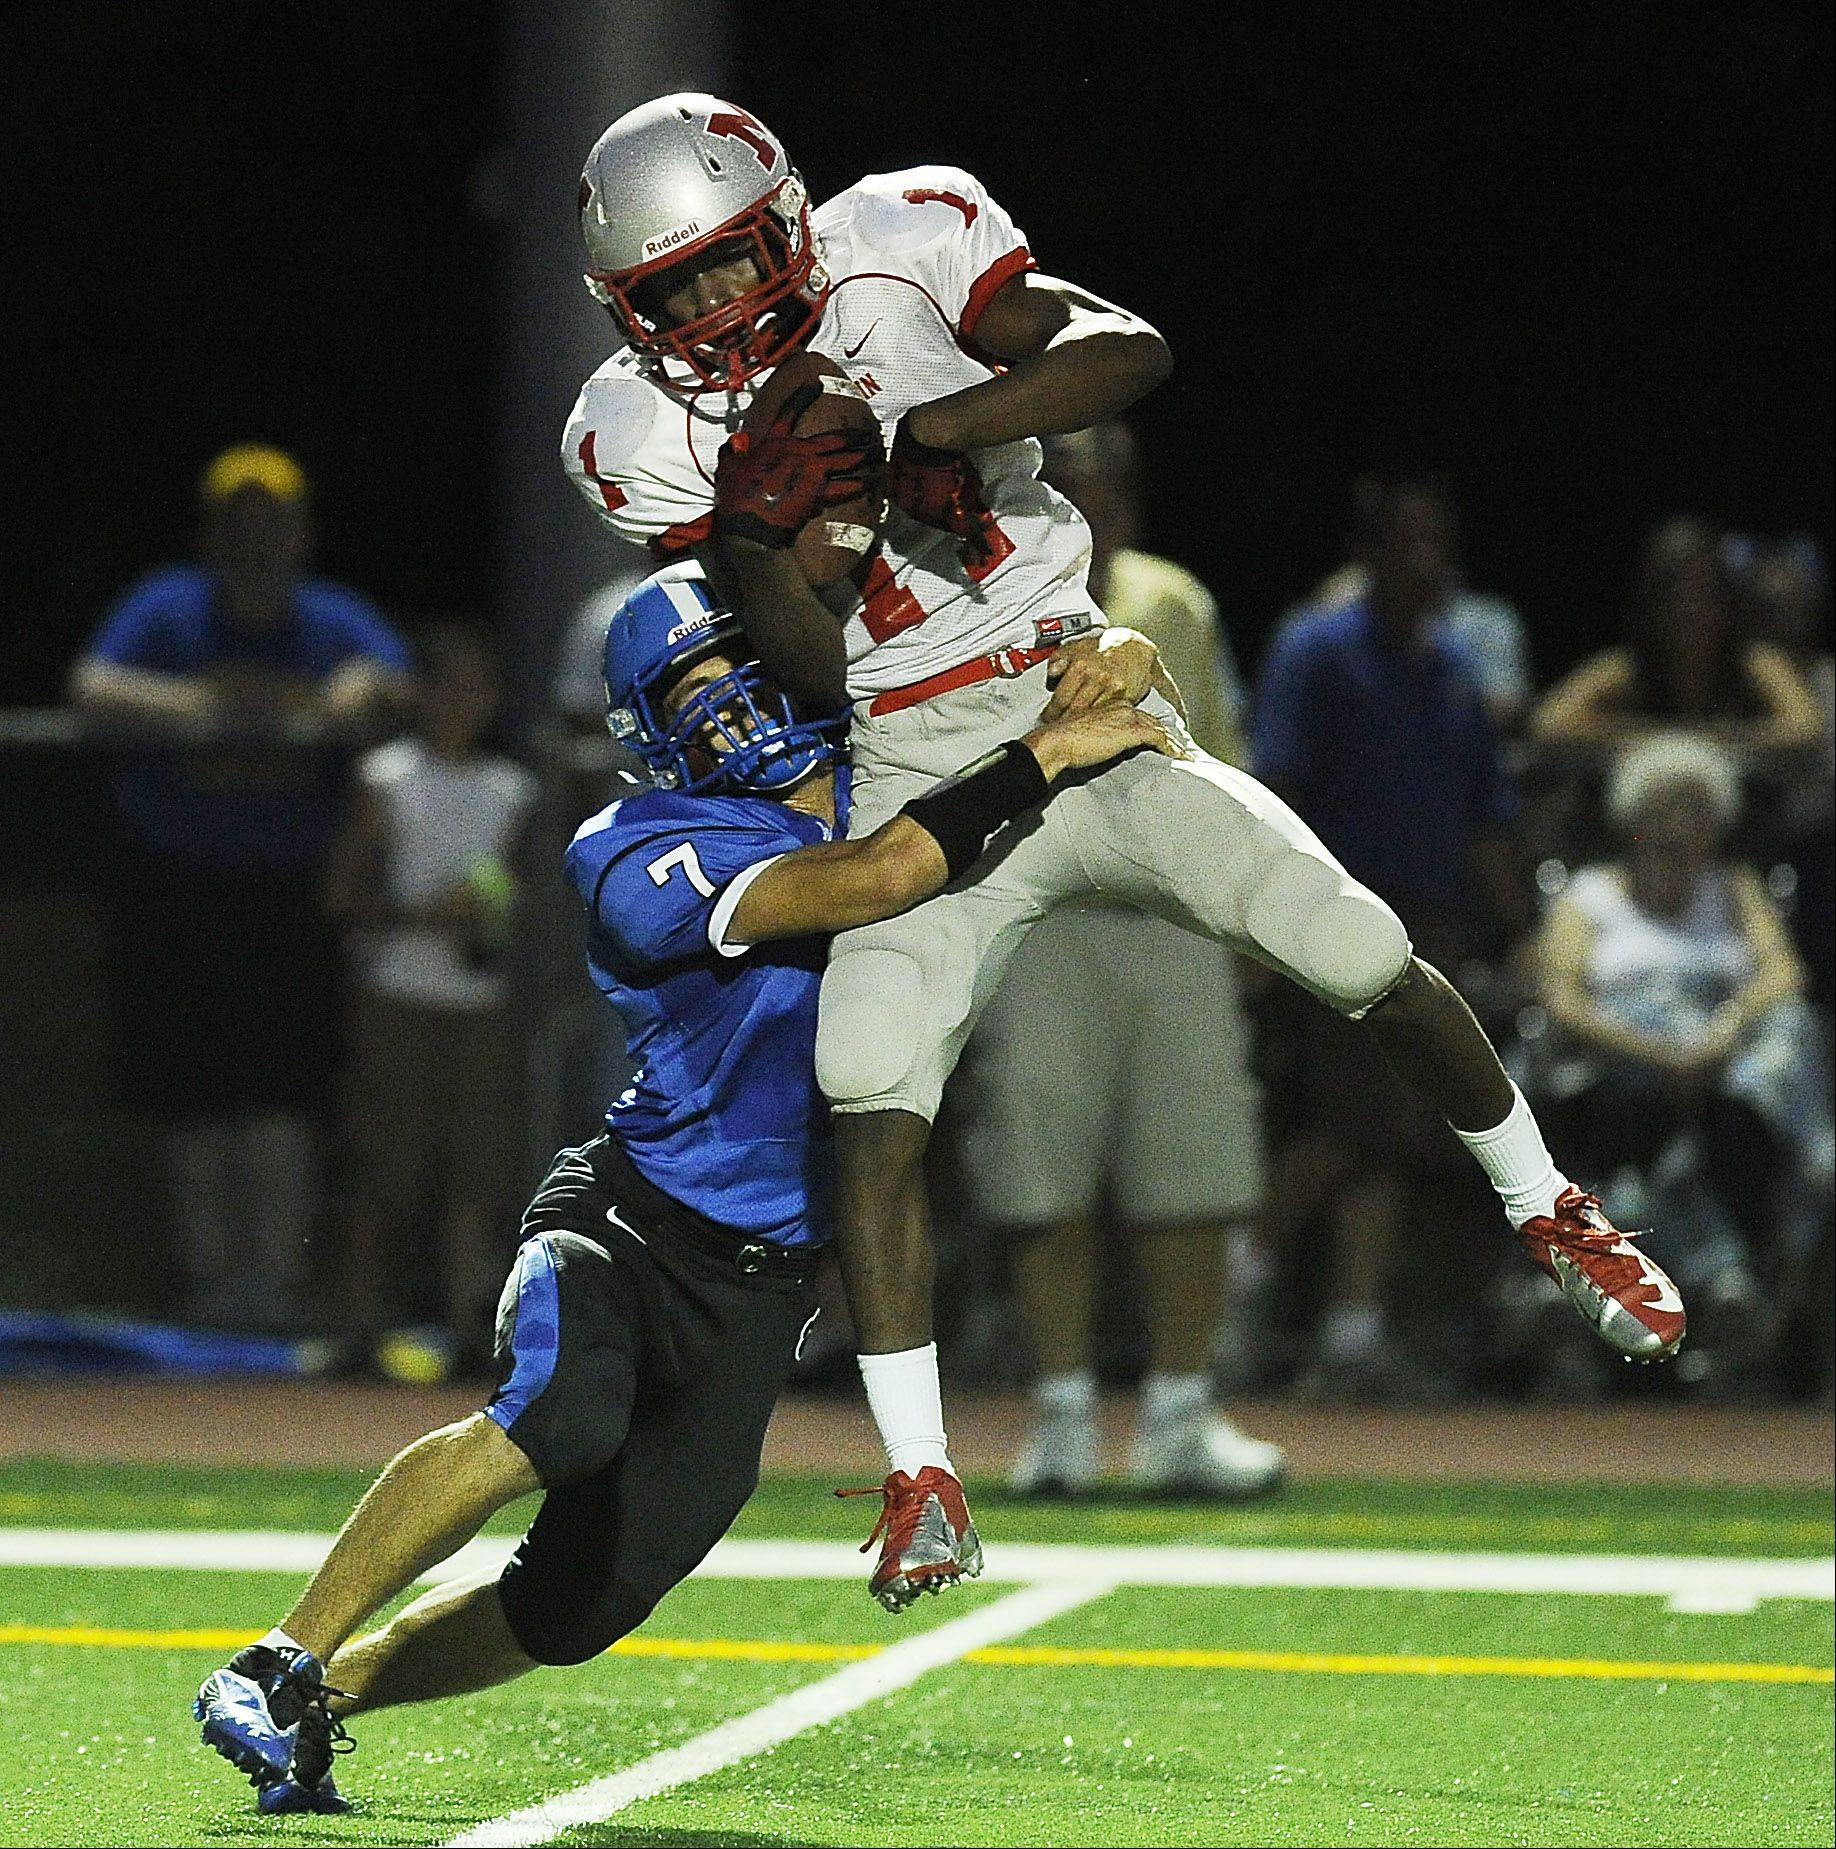 Mundelein's Chance Lindsey hauls in a pass despite pressure from Wheeling's Michael Yoshino in the season opener of Friday night football at Wheeling High School.